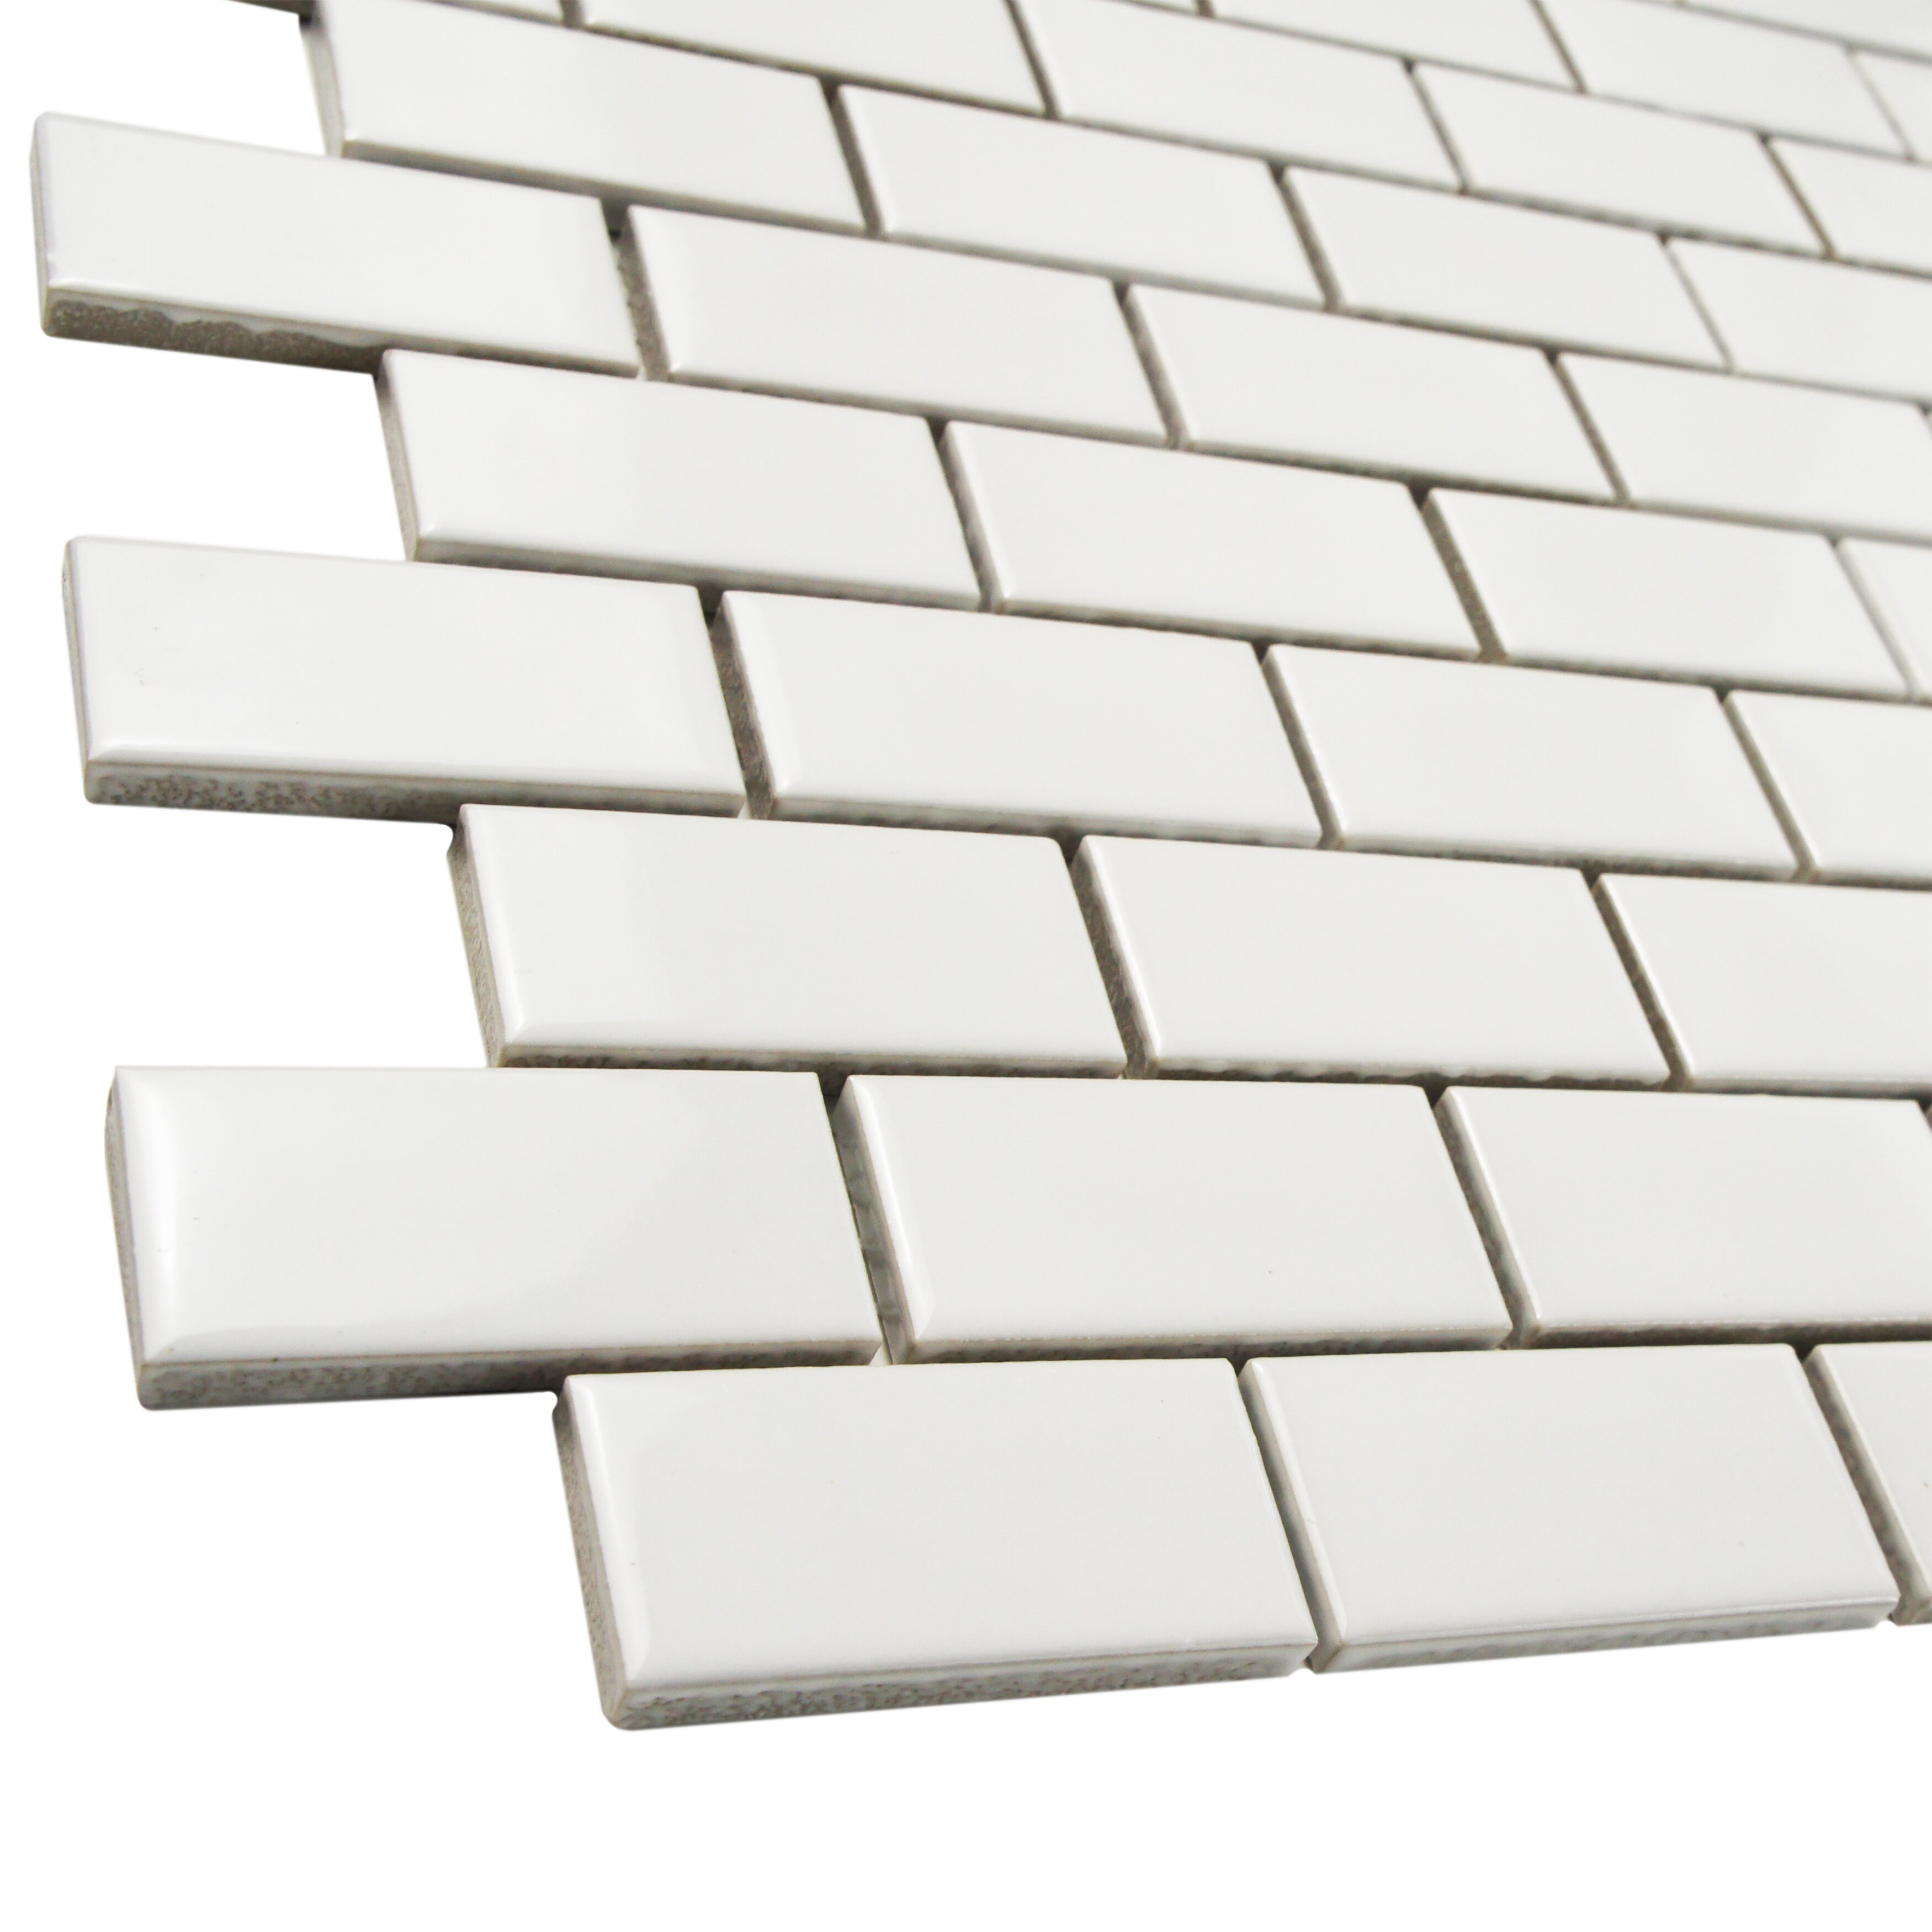 Speaking, vintage mozaic tile simply matchless